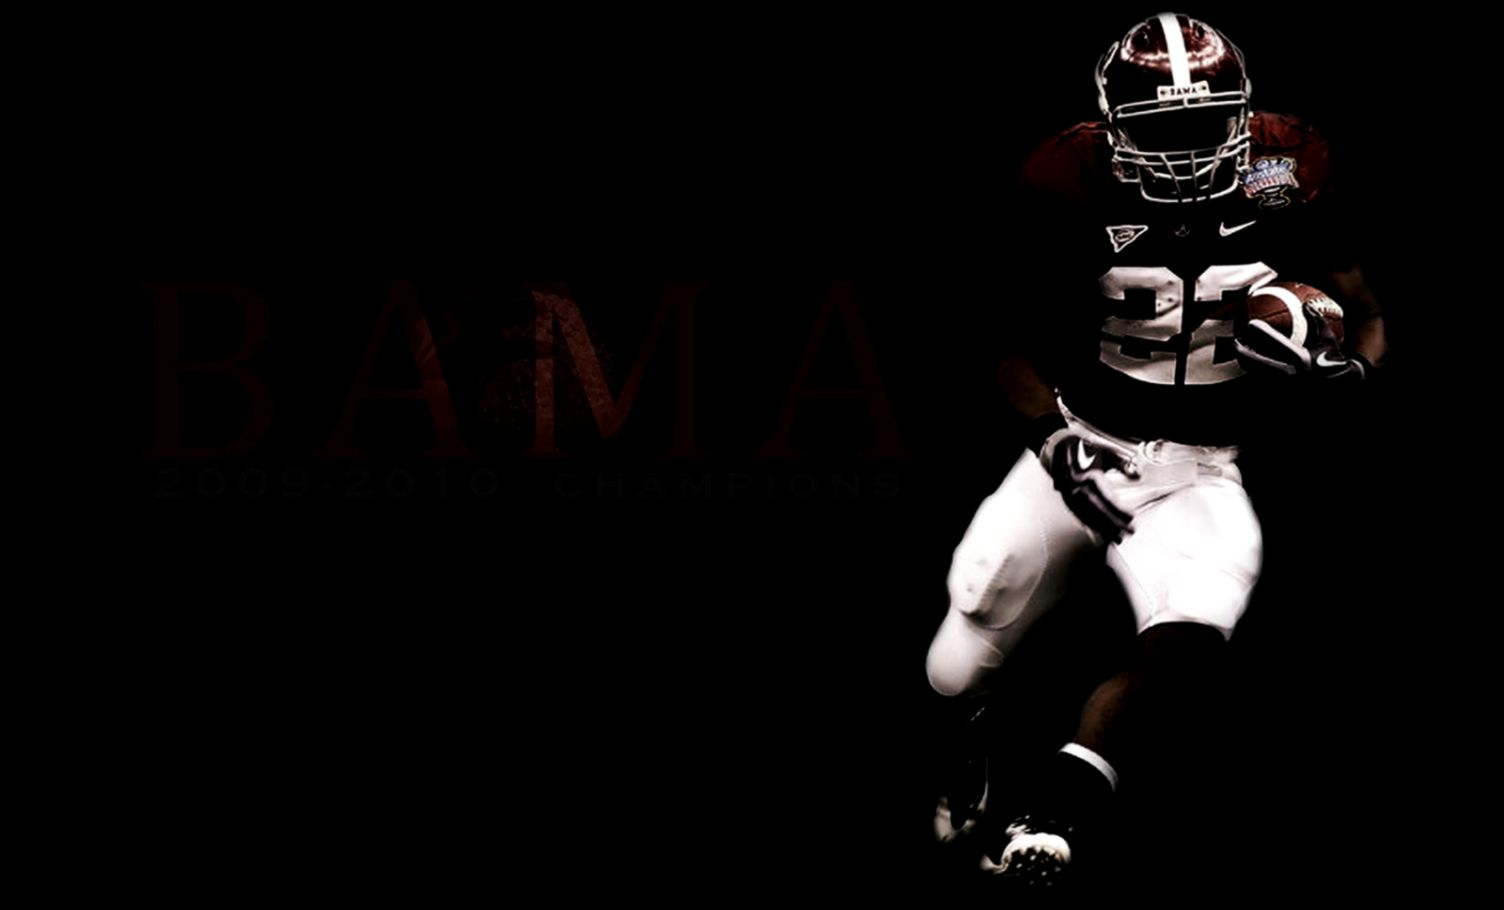 View Original Size College Football HD Wallpapers Image Source From This